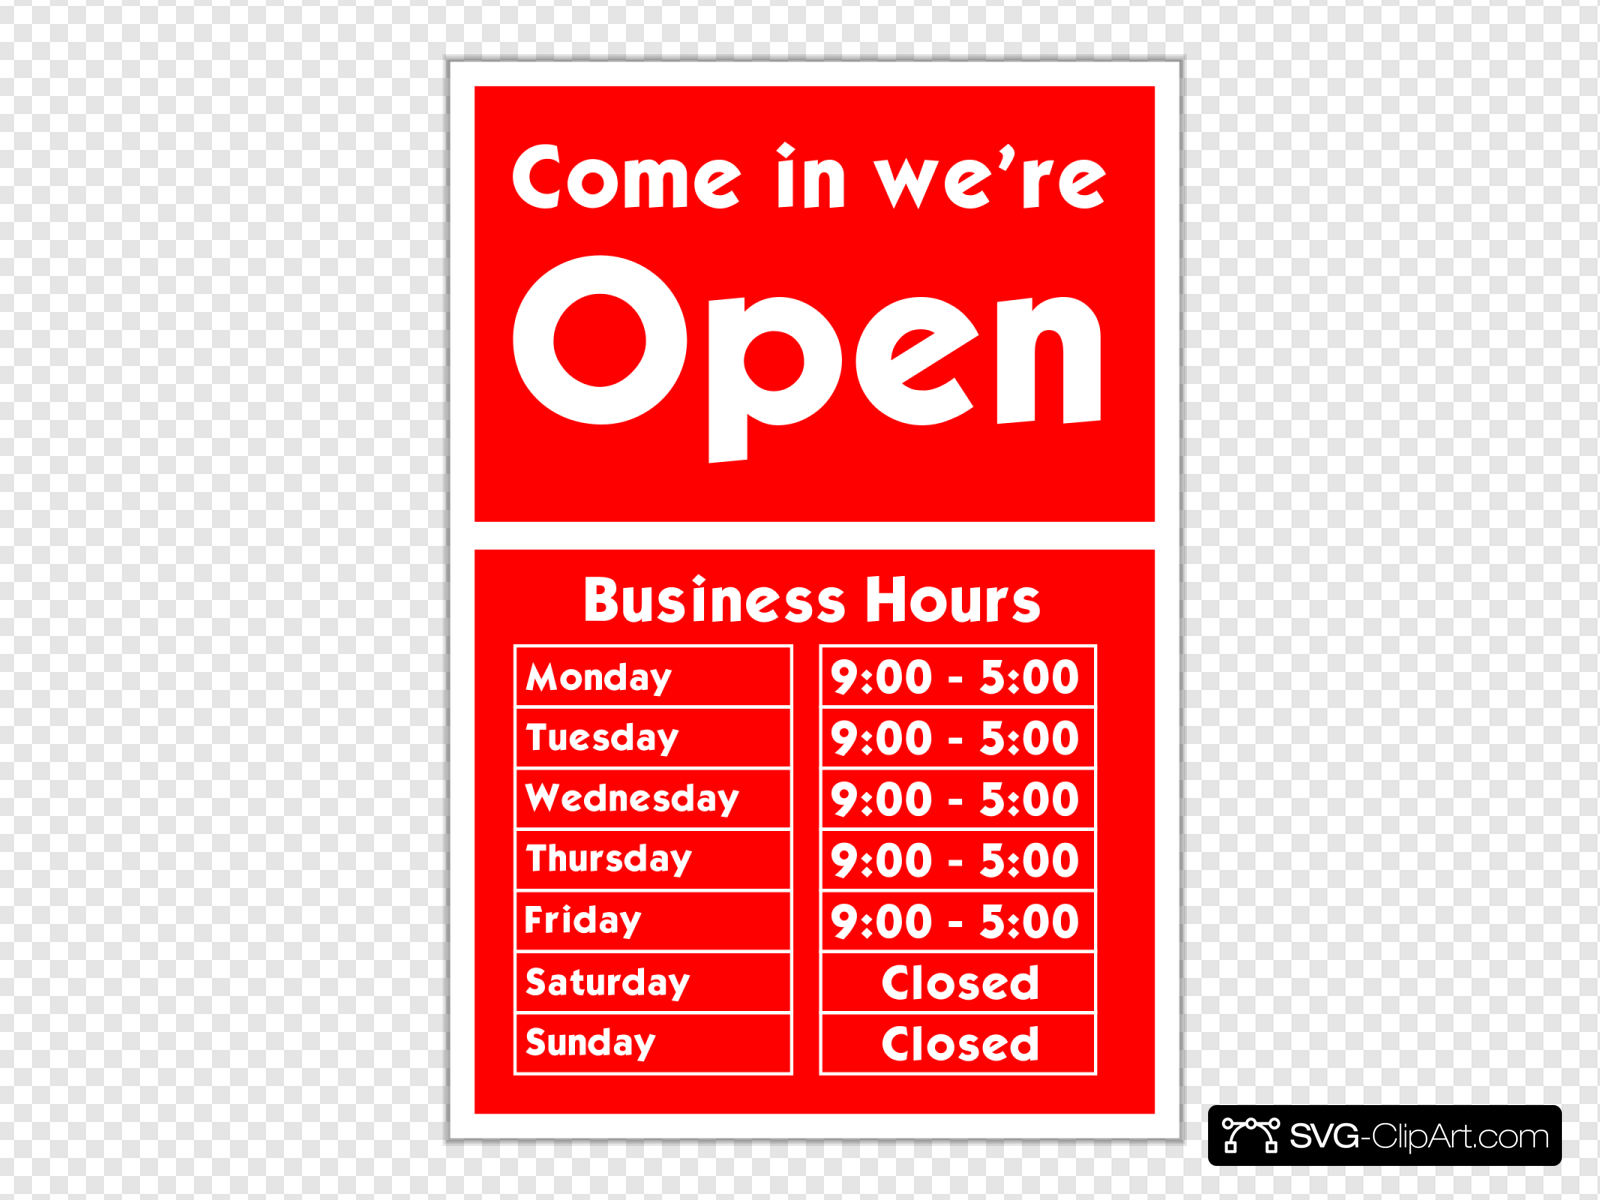 We are open sign clipart banner royalty free stock Come In We Are Open Sign Clip art, Icon and SVG - SVG Clipart banner royalty free stock